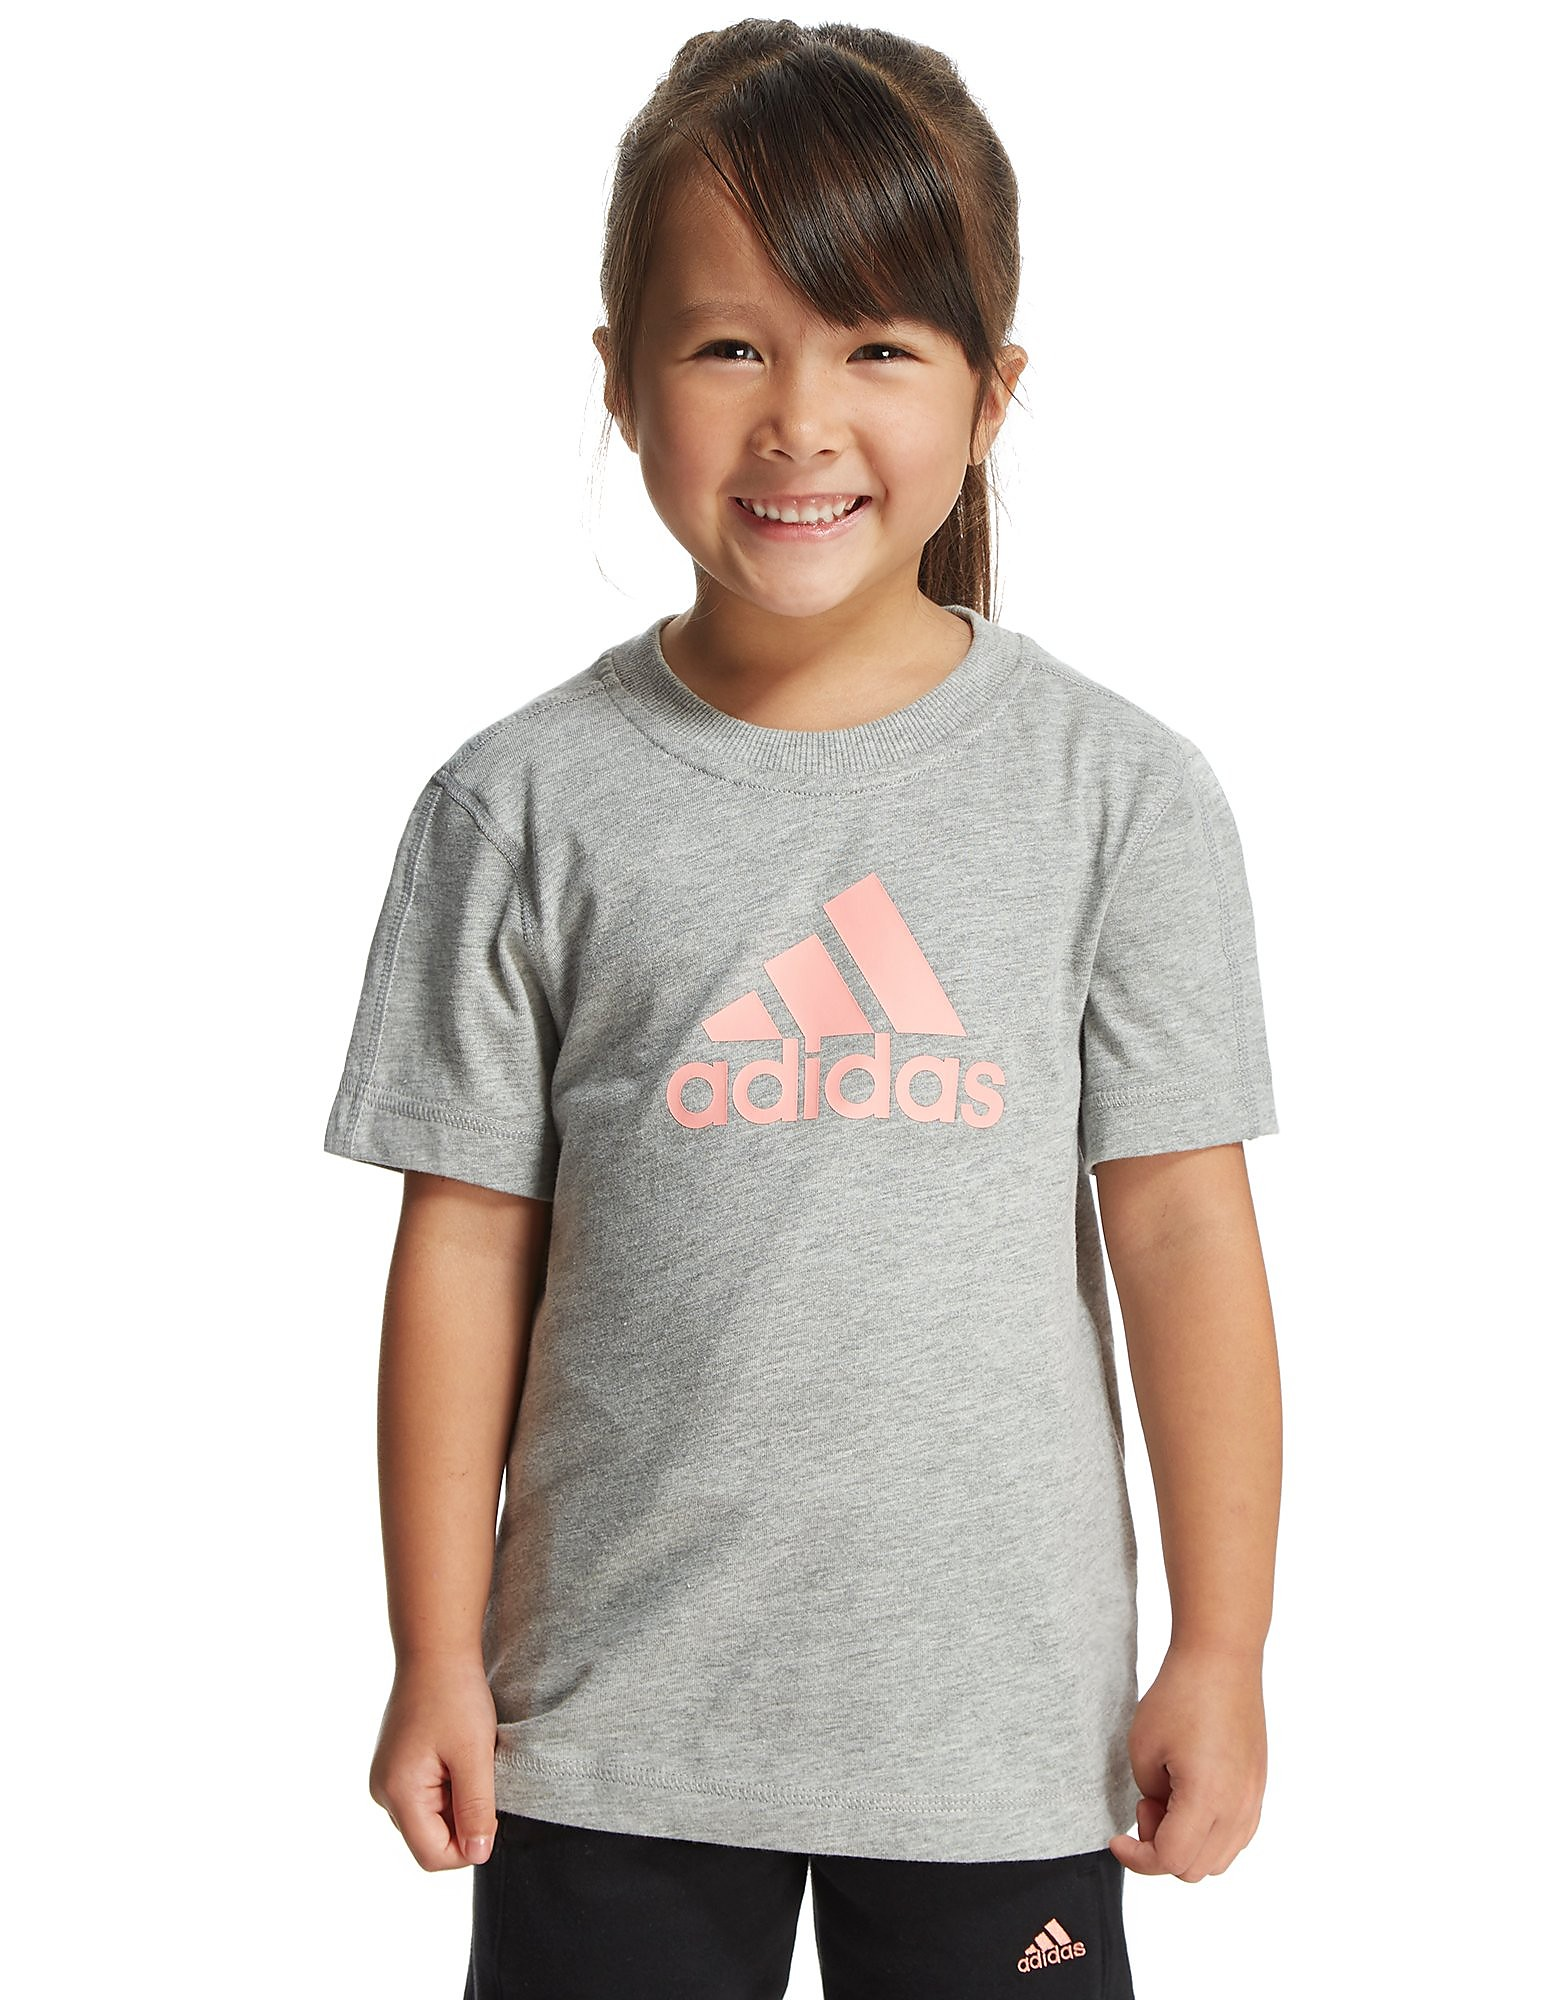 adidas Girls' Essentials Logo T-Shirt Children